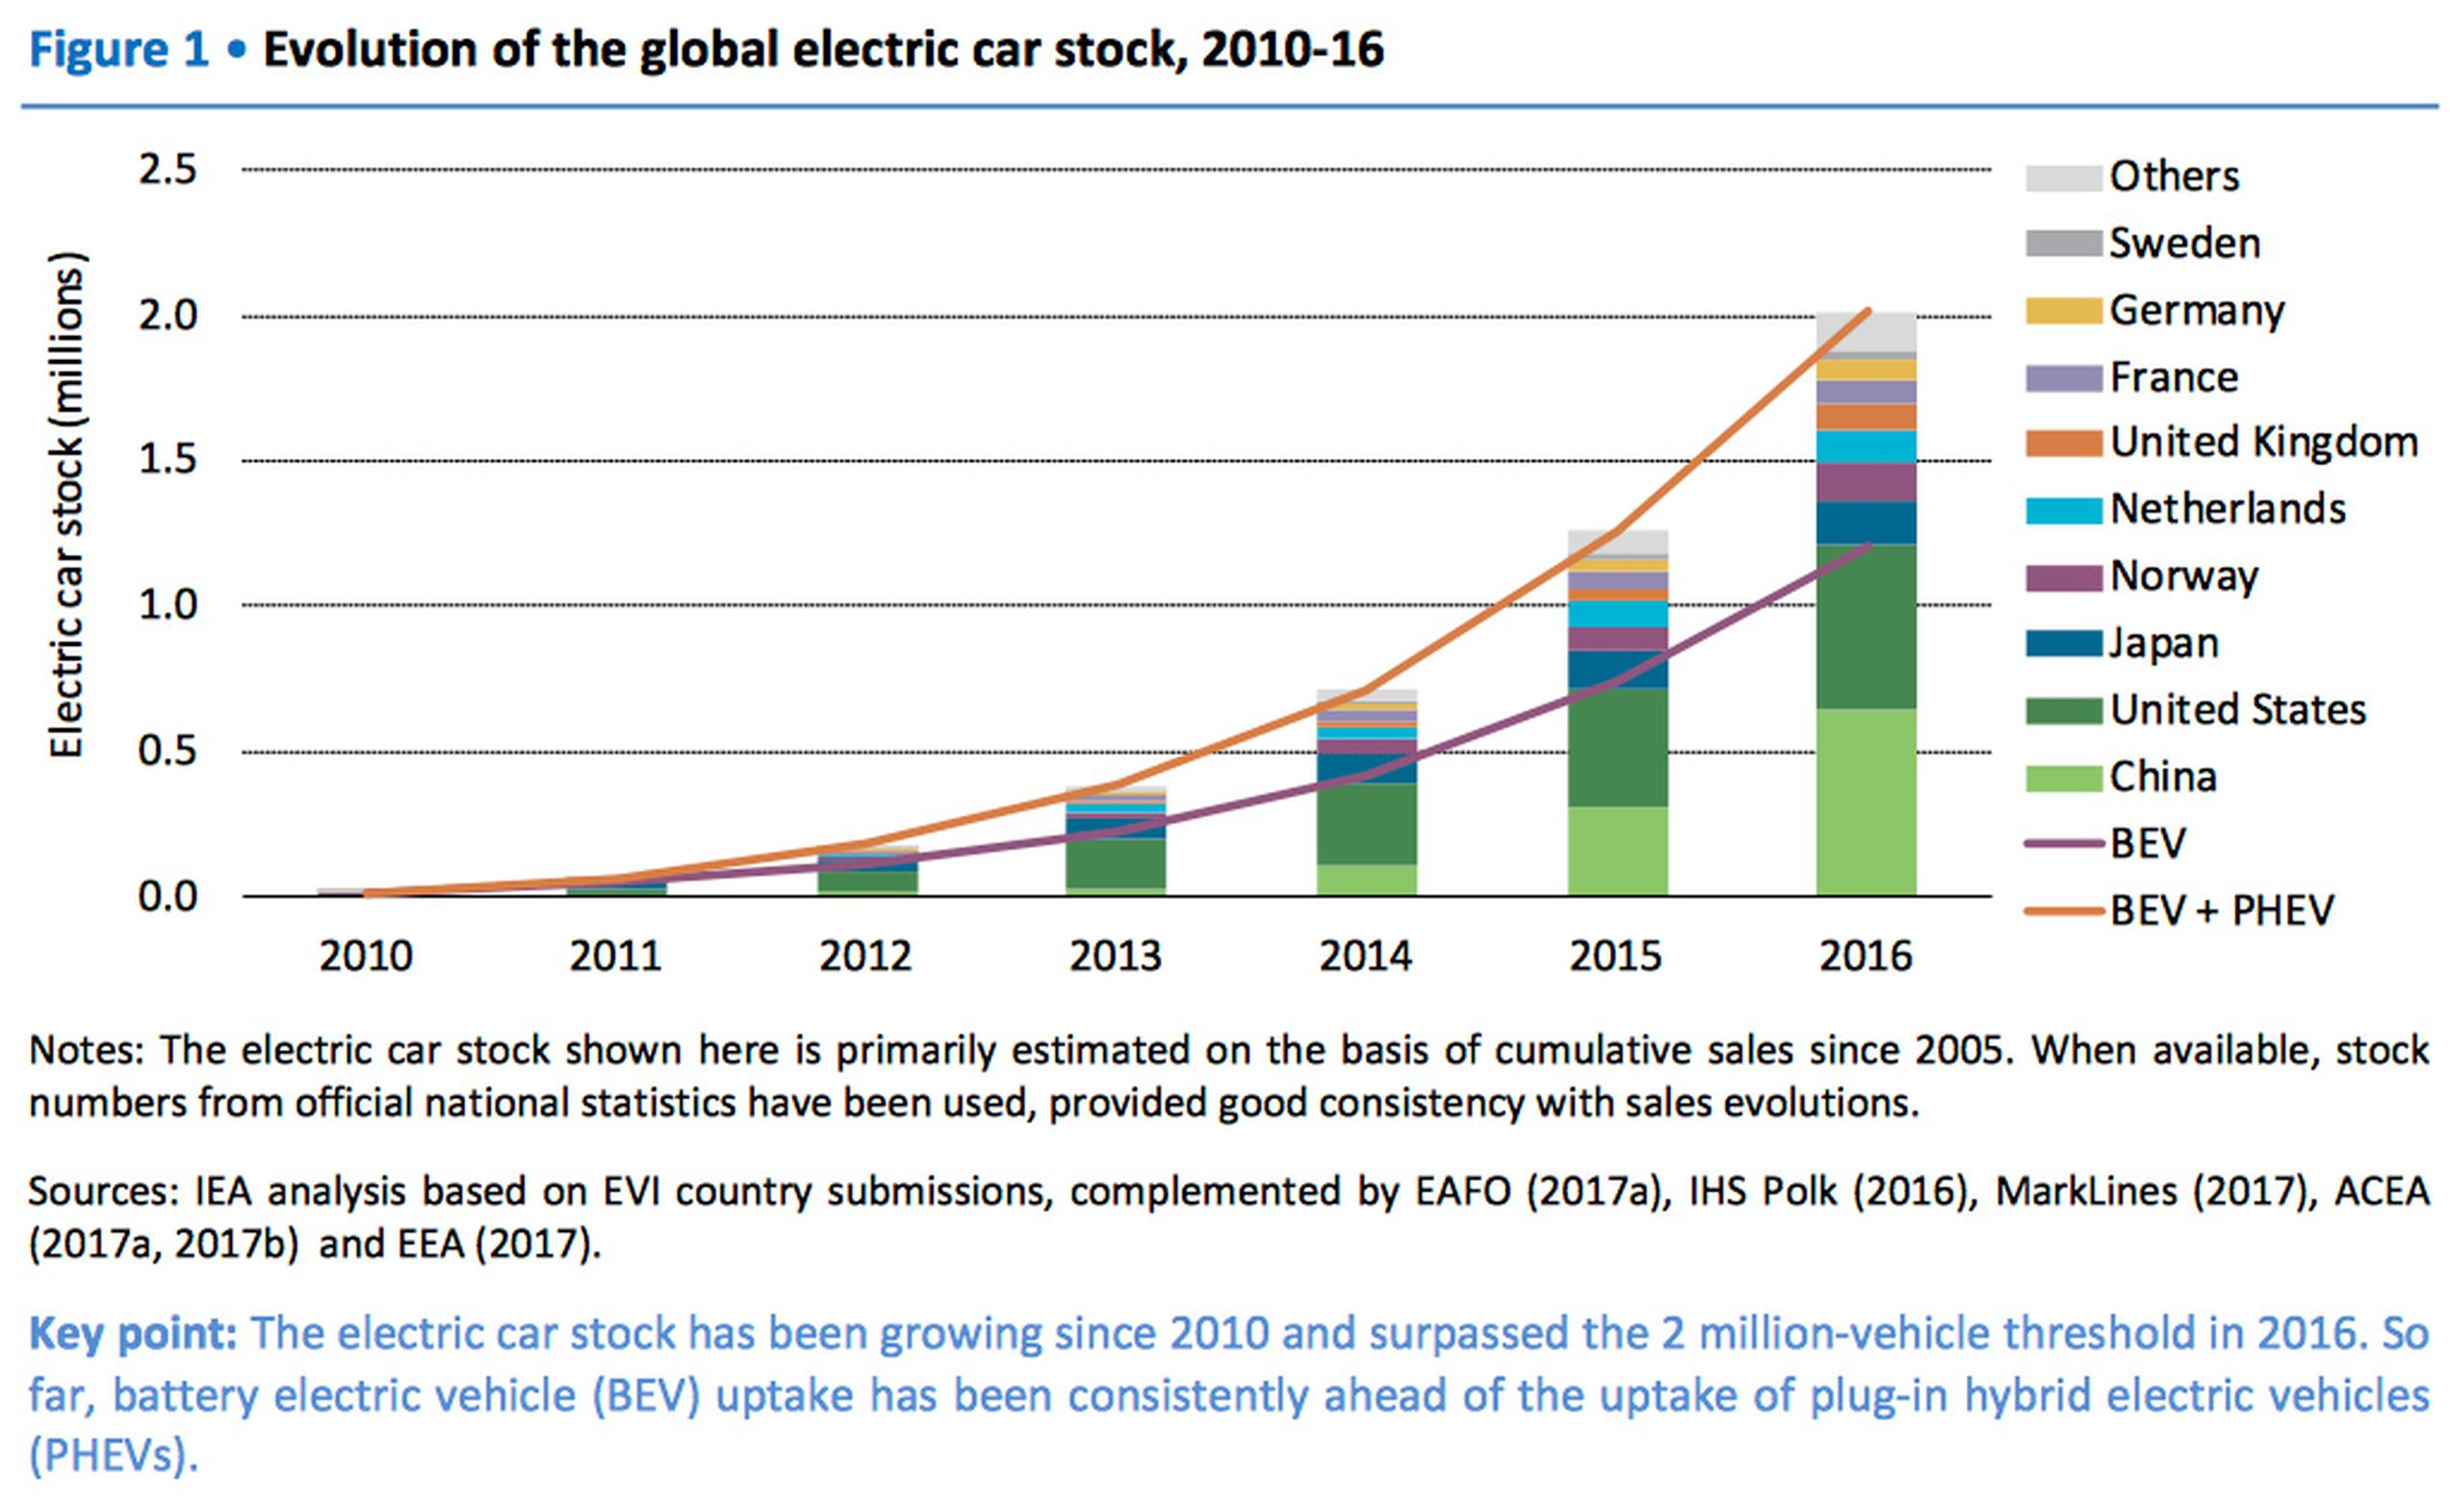 Global electric car stock 2010 - 2016